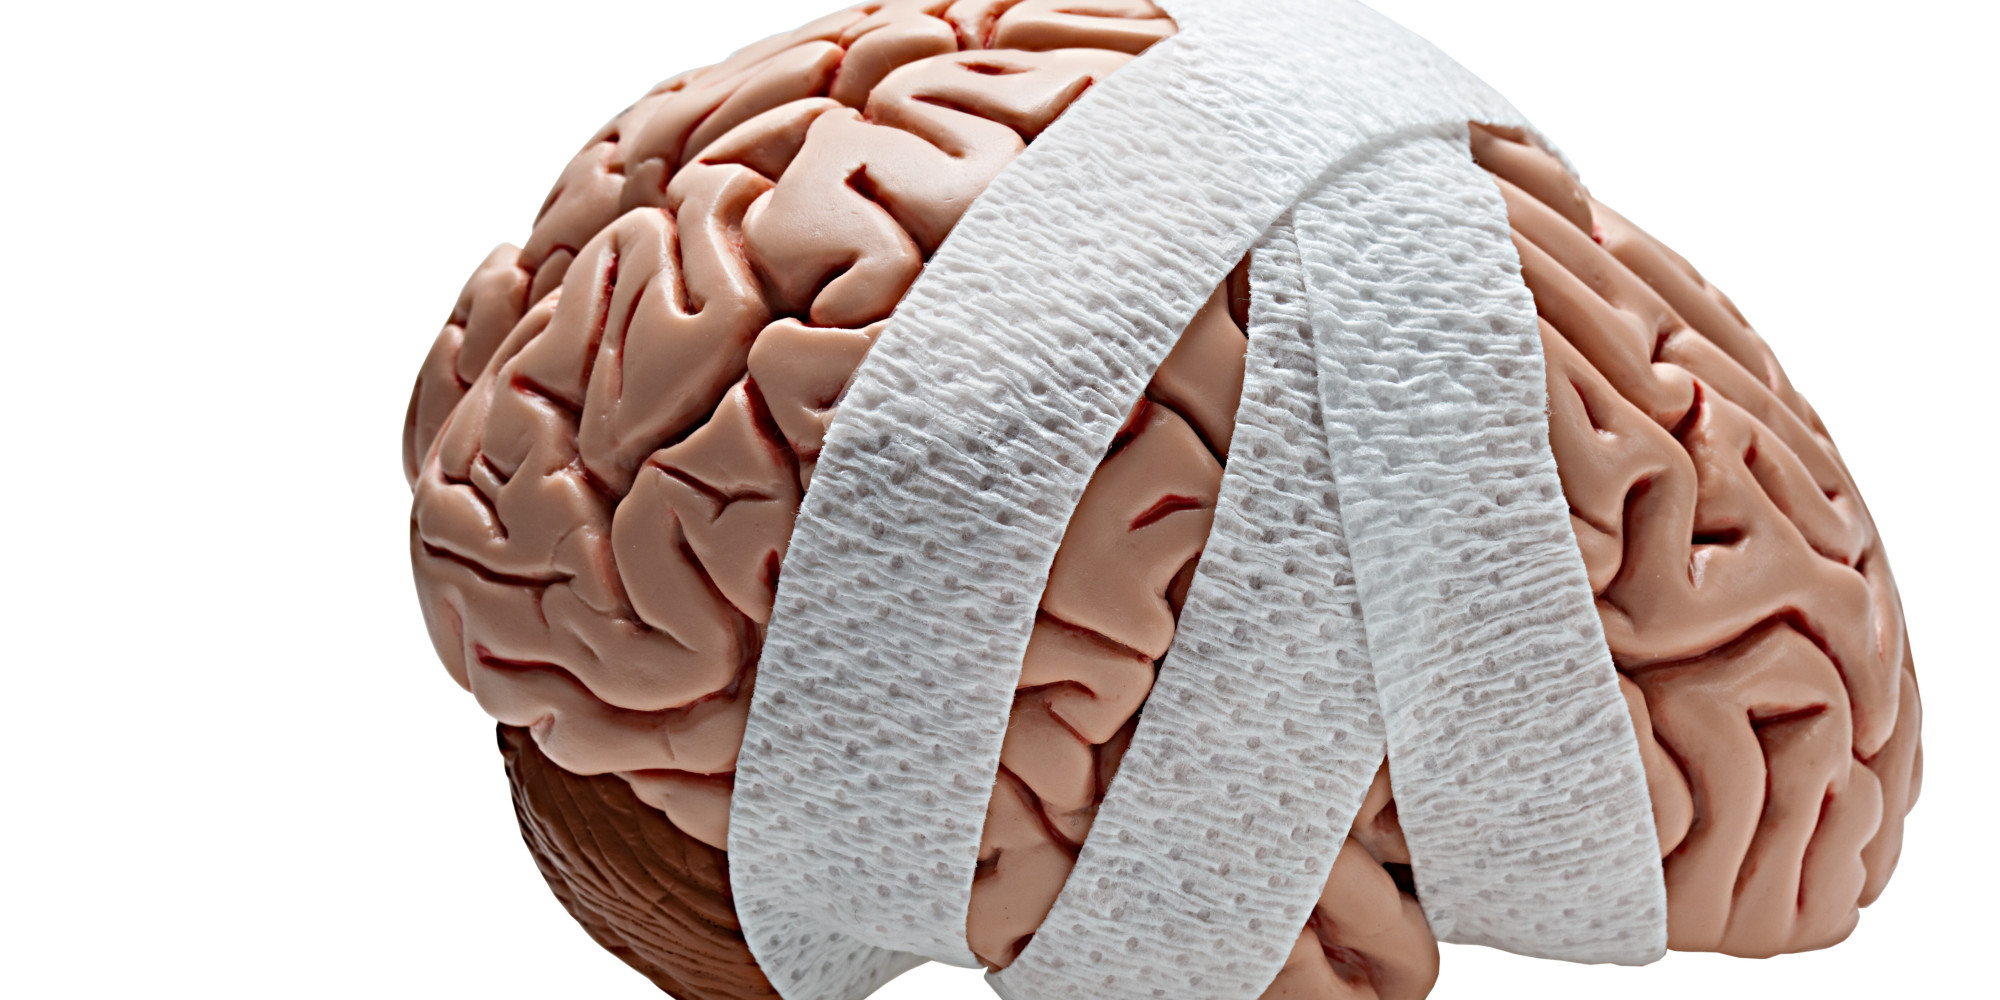 head trauma a leading cause of brain damage Traumatic brain injury, often shortened to tbi, occurs when a sudden, external trauma causes damage to the brain the centers for disease control and prevention determined that falls were the leading cause yet another study found that experiencing depressive symptoms after a head injury.